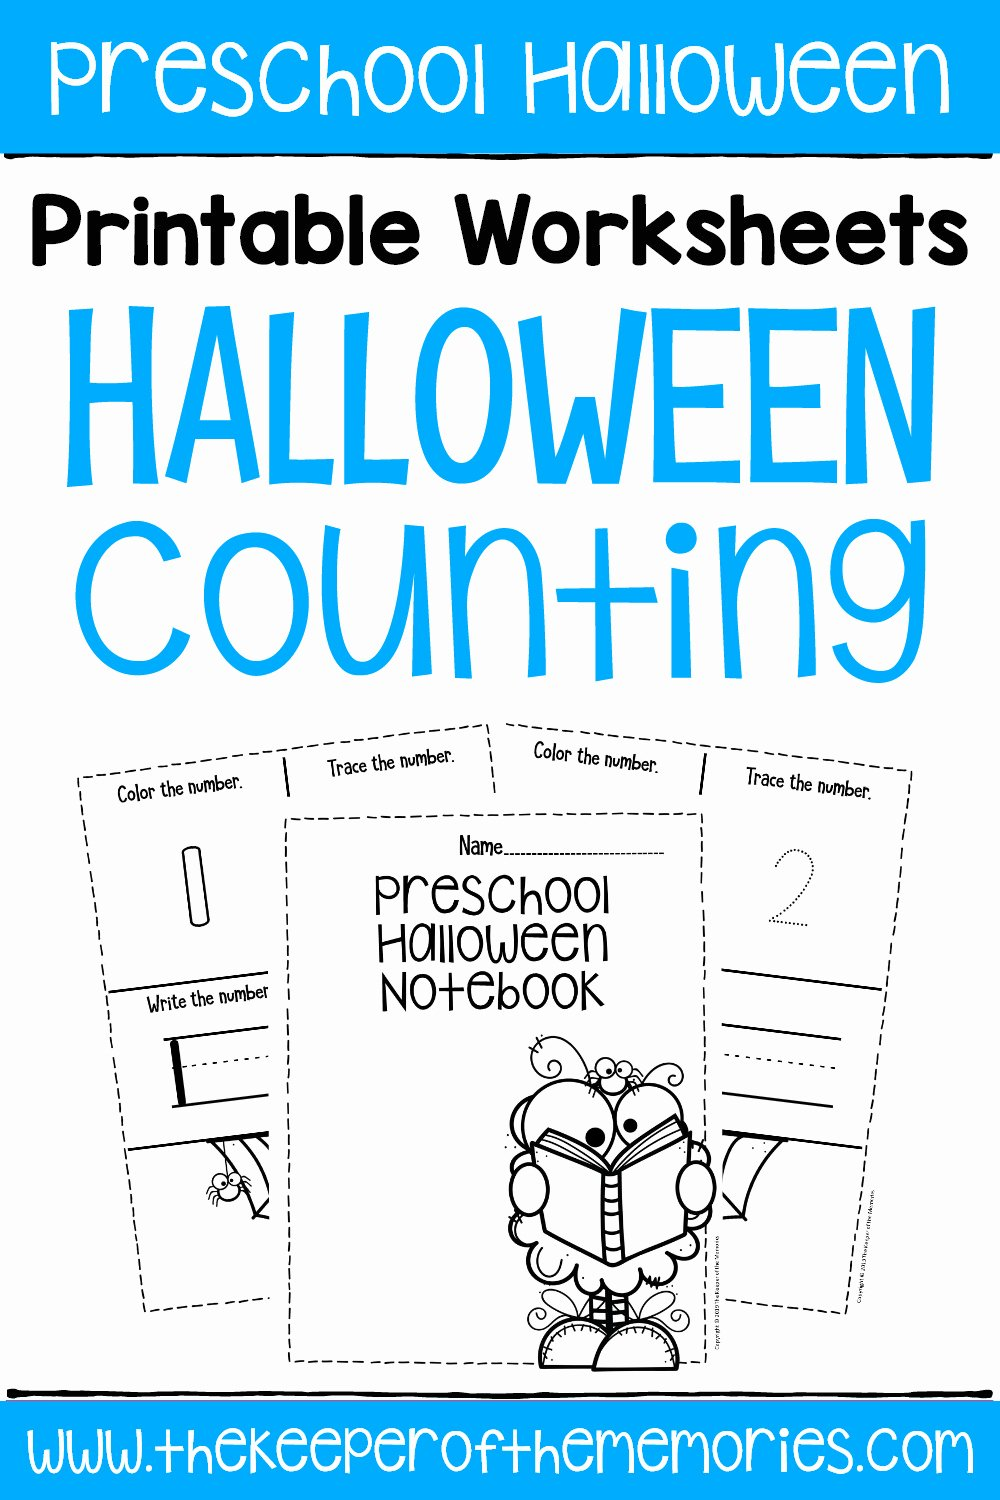 Printable Halloween Worksheets for Preschoolers Awesome Free Printable Numbers Halloween Preschool Worksheets